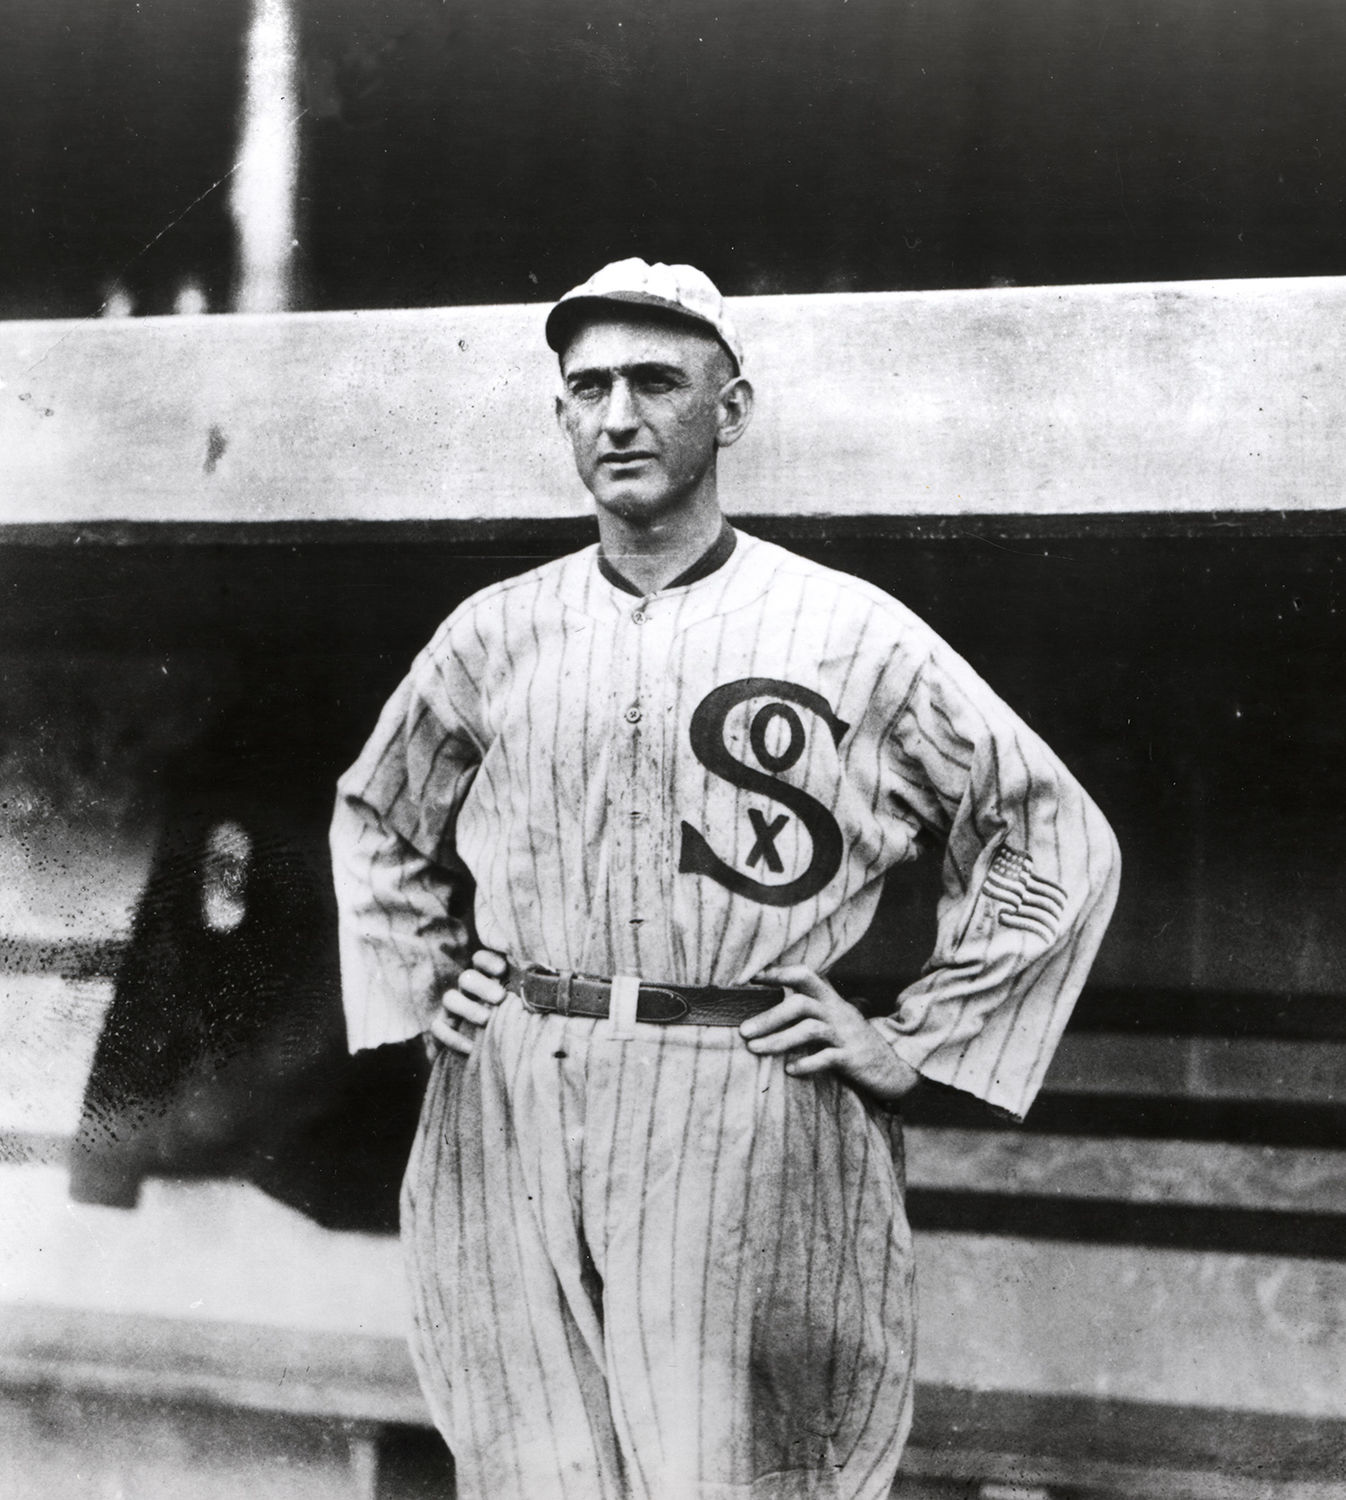 an introduction to shoeless joe and the black sox scandal A cultural history of the black sox scandal the story of shoeless joe jackson and his teammates purportedly conspiring with saying it's so is ambitious.